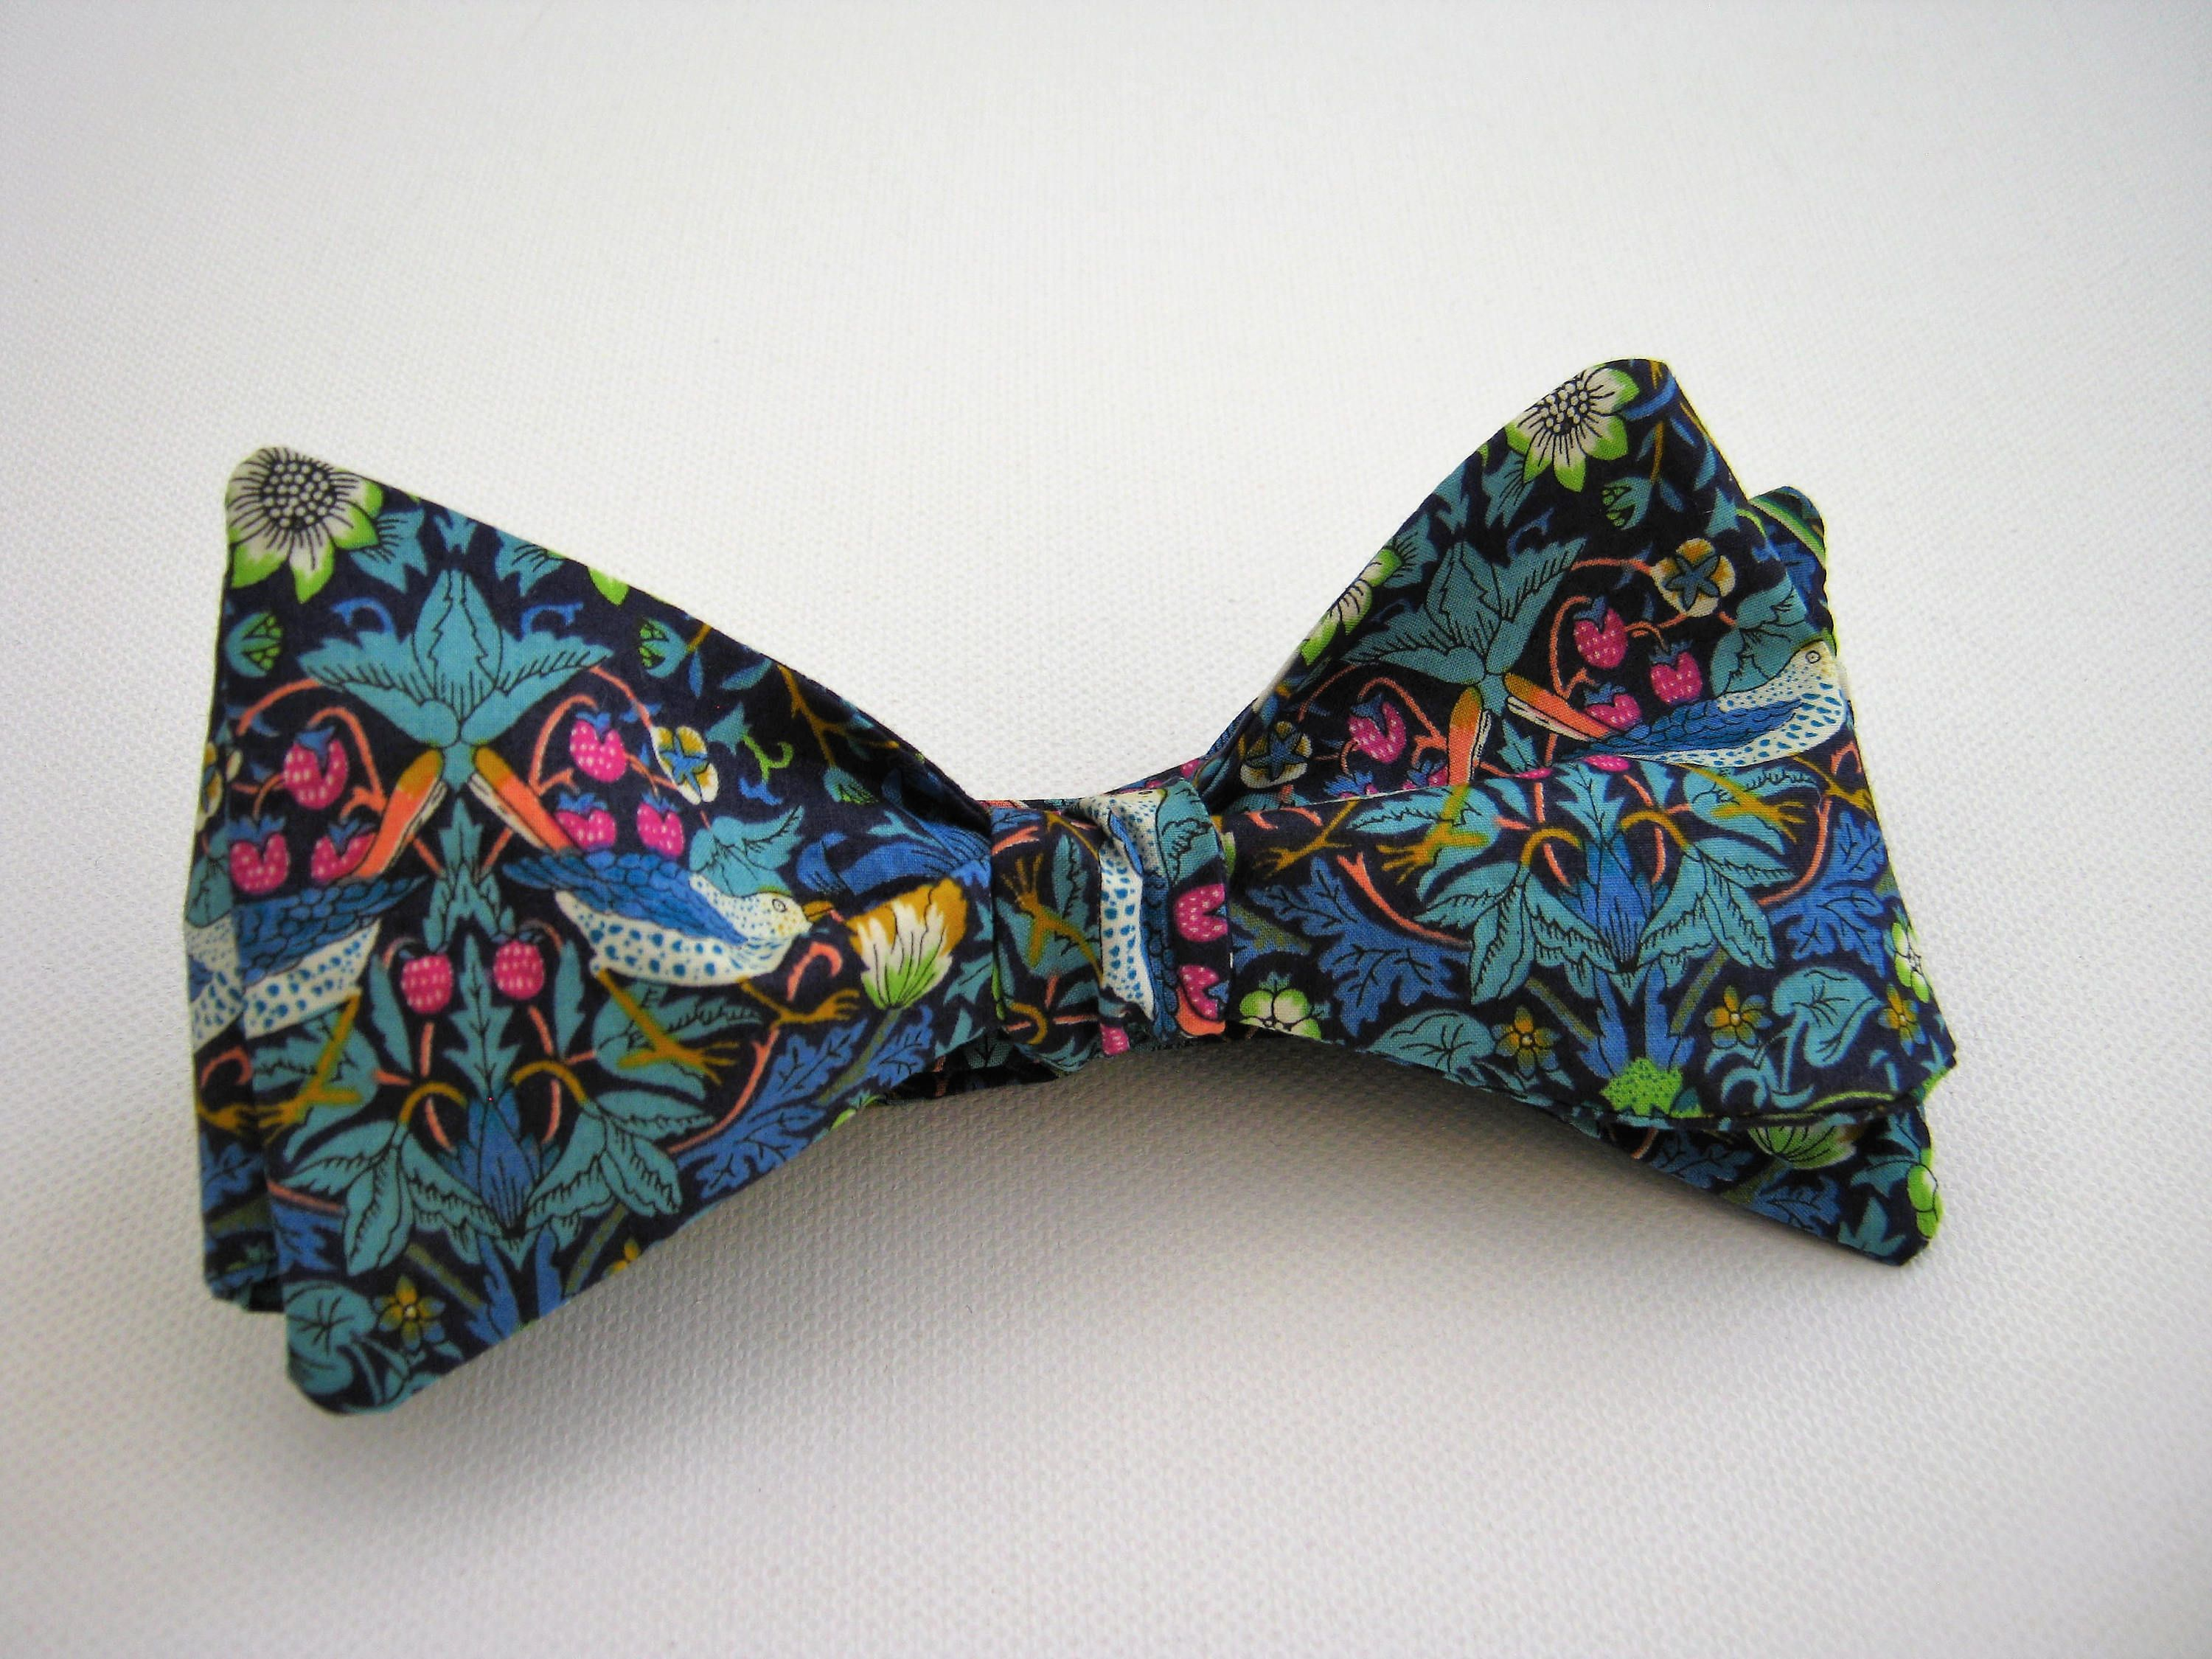 HAND MADE! Liberty Art Bow Tie